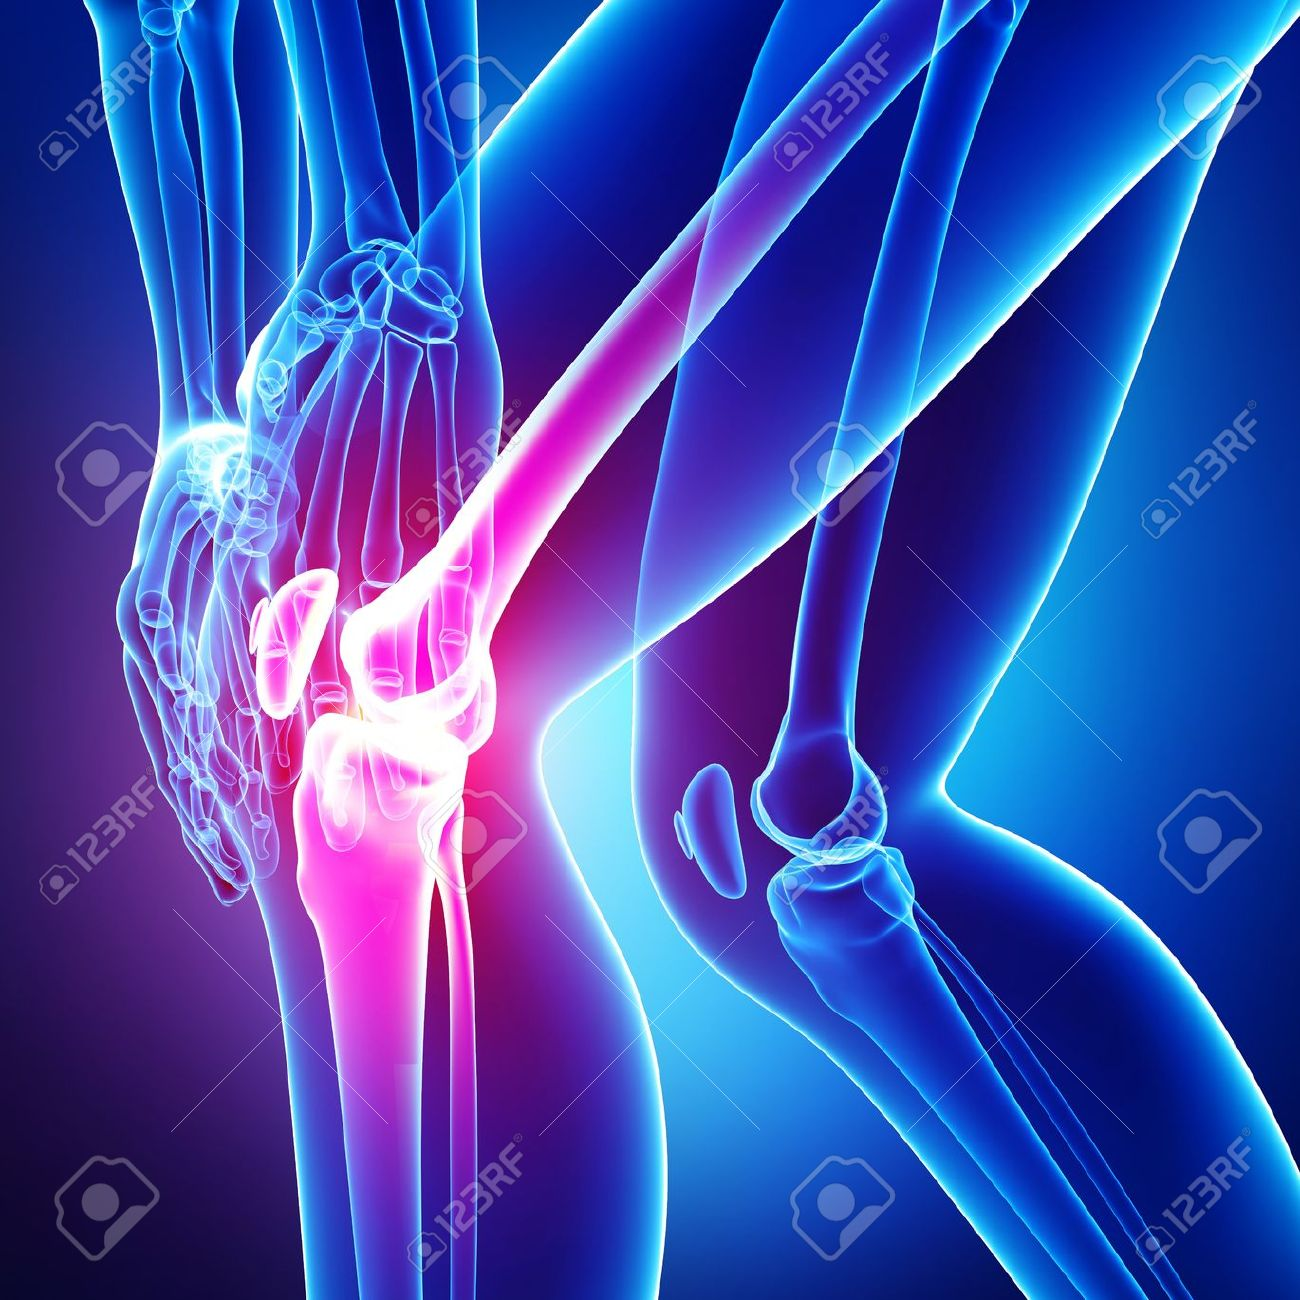 Anatomy Of Knee Pain In Blue Stock Photo, Picture And Royalty Free ...